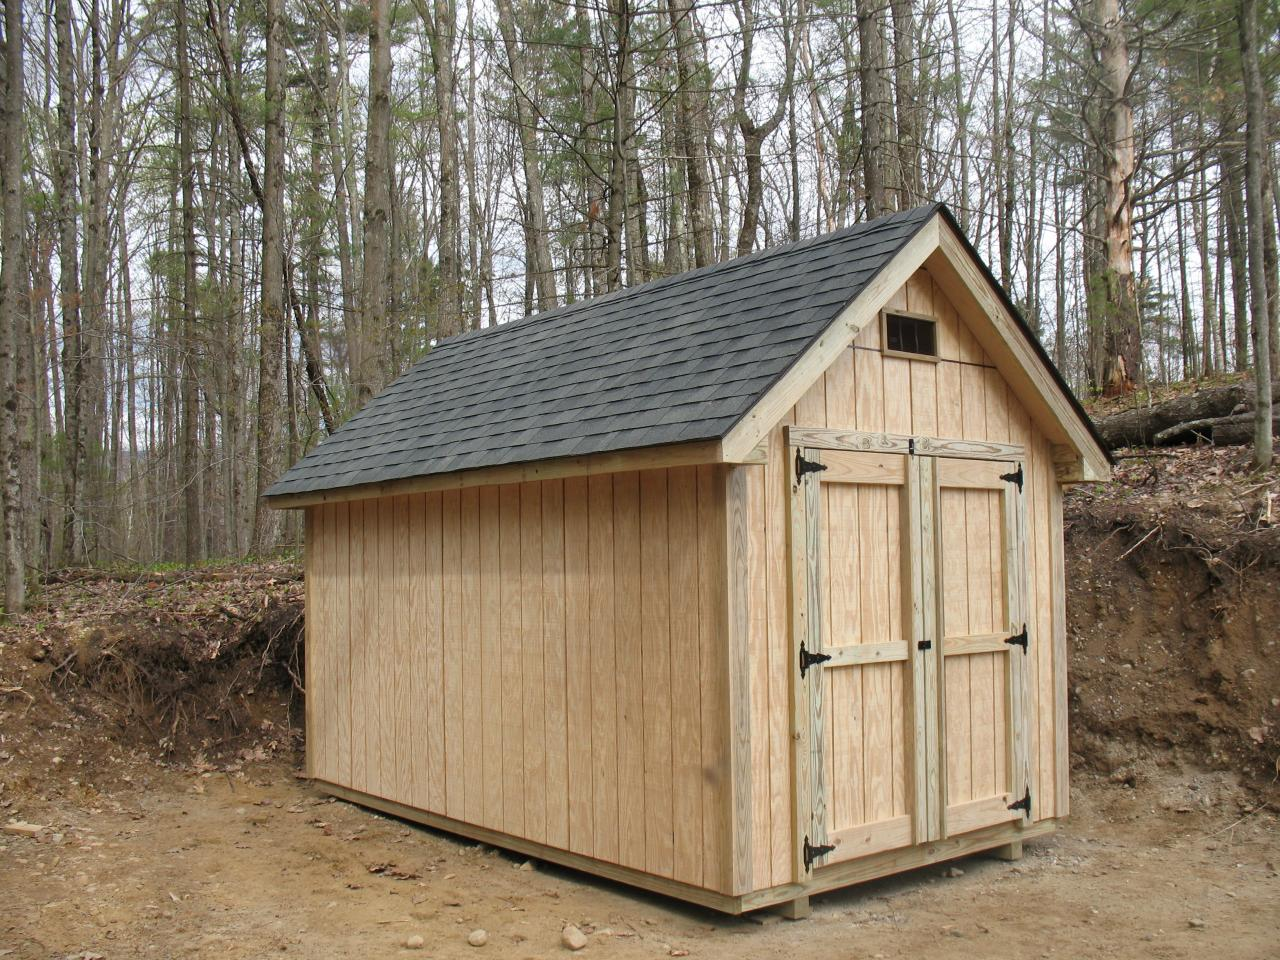 Custom Sheds And Barns : Vermont sheds and barns custom built on site